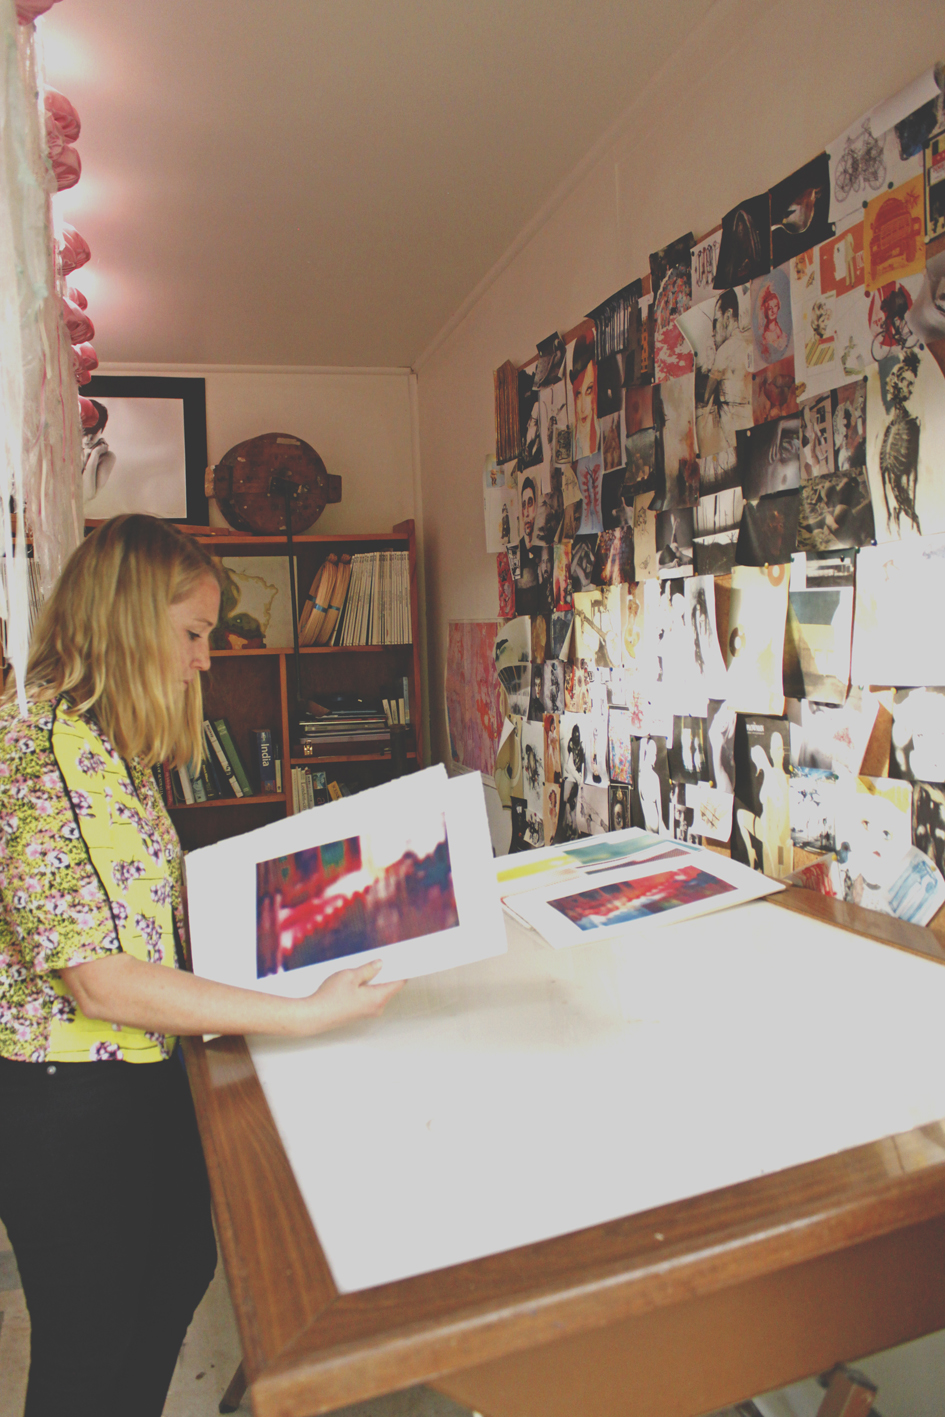 Australian artist studio visit - Madeline Young, The Corner Store Gallery, Orange NSW, photograph by Kieth Yap